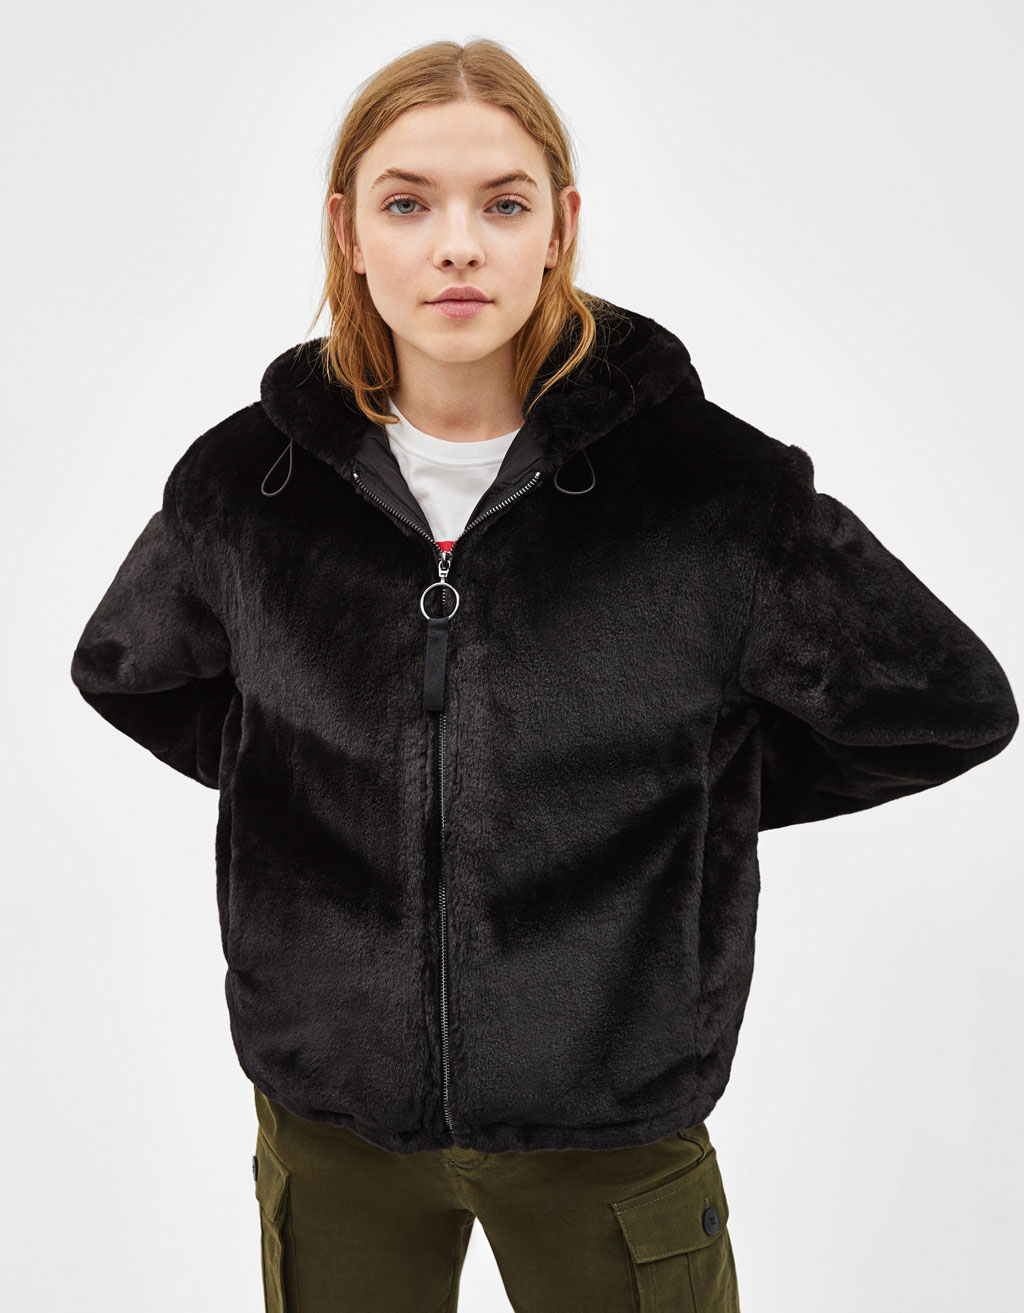 Faux fur jacket with hood and stripes.